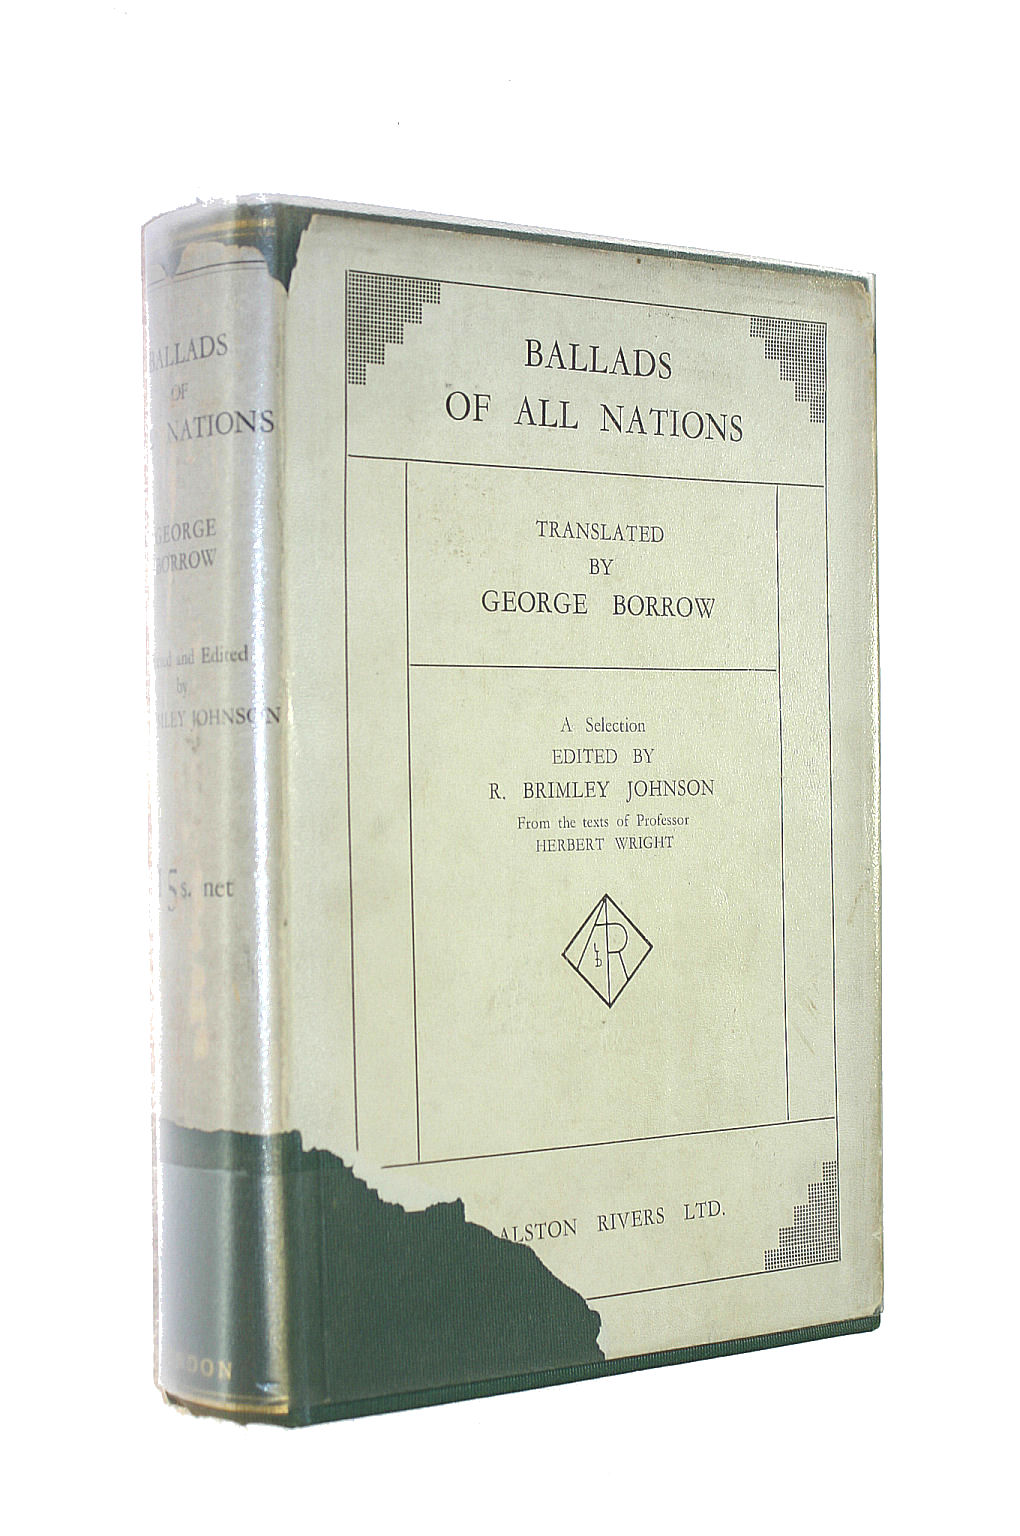 Image for Ballads of All Nations. Translated by George Borrow. A Selection Edited by R Brimley Johnson.